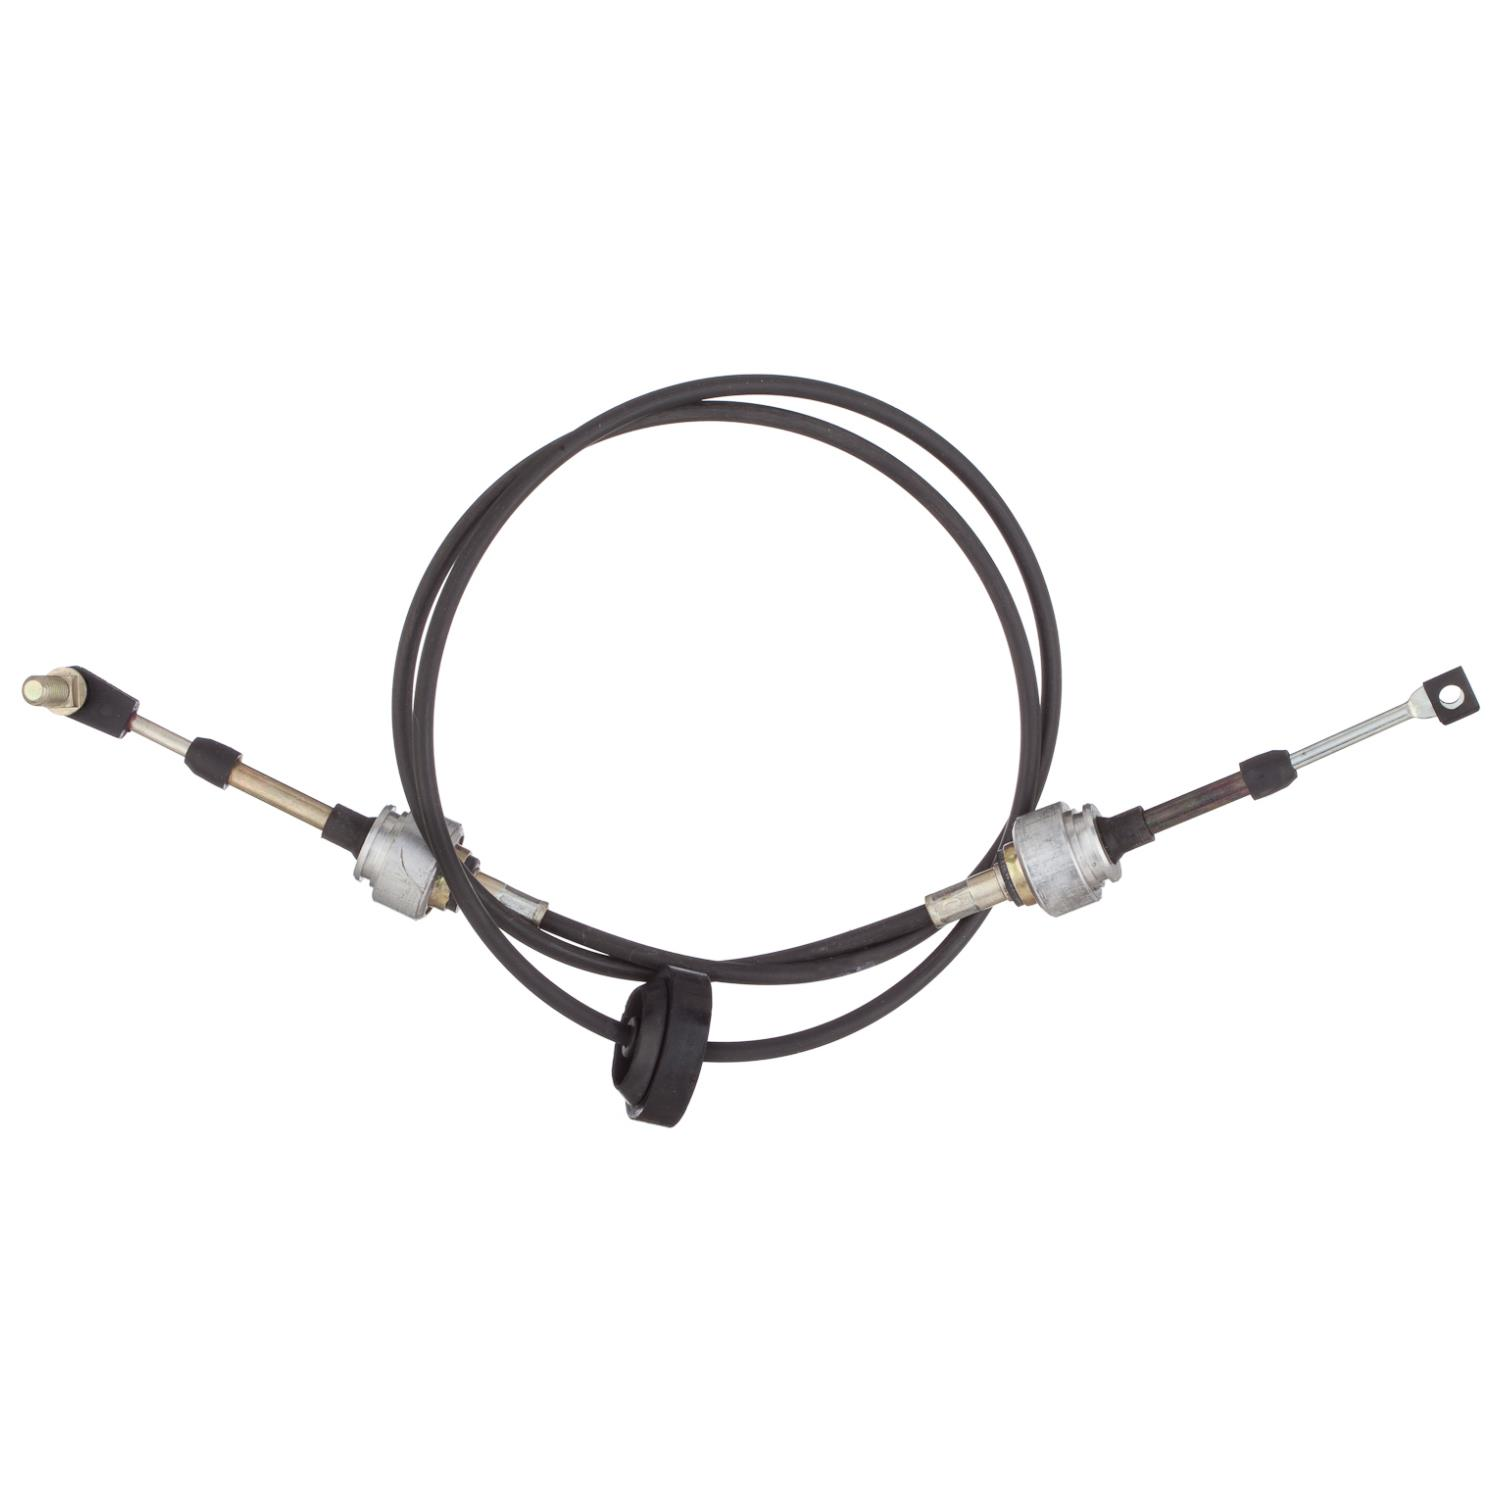 ATP Automotive Y-1508 Manual Transmission Shift Cable